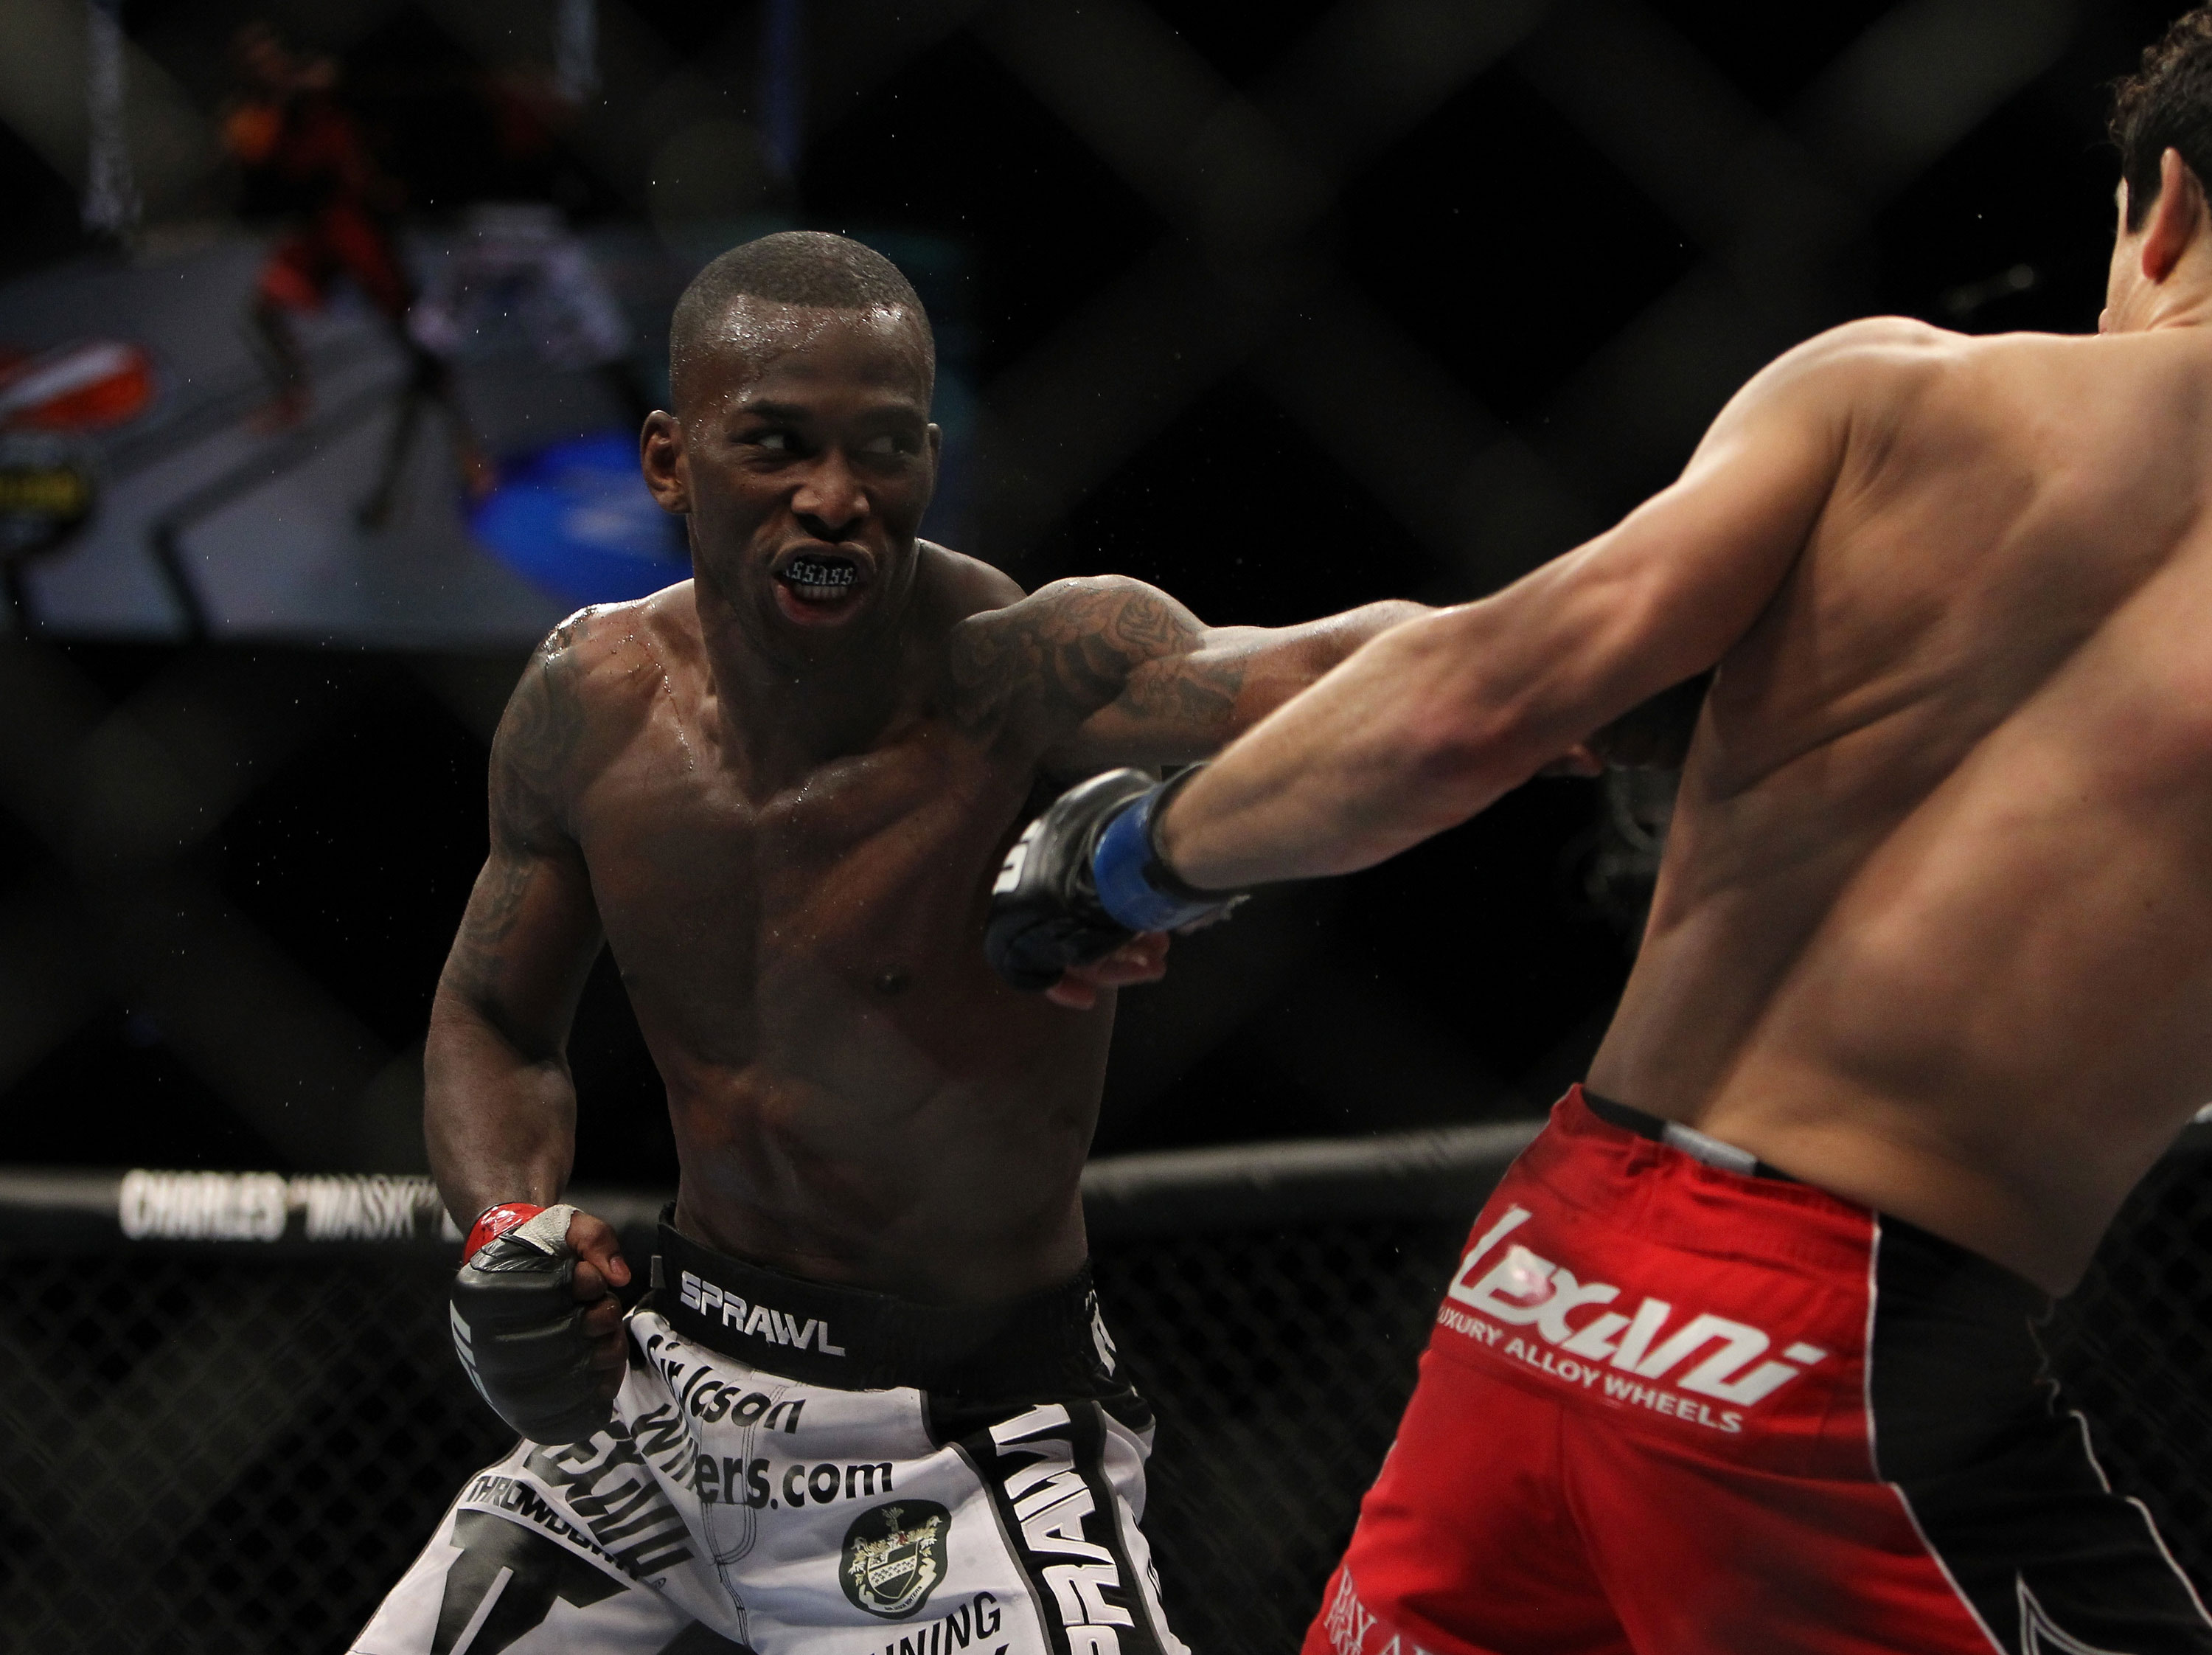 LAS VEGAS, NV - DECEMBER 30:  Anthony Njokuani (left) punches Danny Castillo (right) during the UFC 141 event at the MGM Grand Garden Arena on December 30, 2011 in Las Vegas, Nevada.  (Photo by Josh Hedges/Zuffa LLC/Zuffa LLC via Getty Images) *** Local Caption *** Anthony Njokuani; Danny Castillo